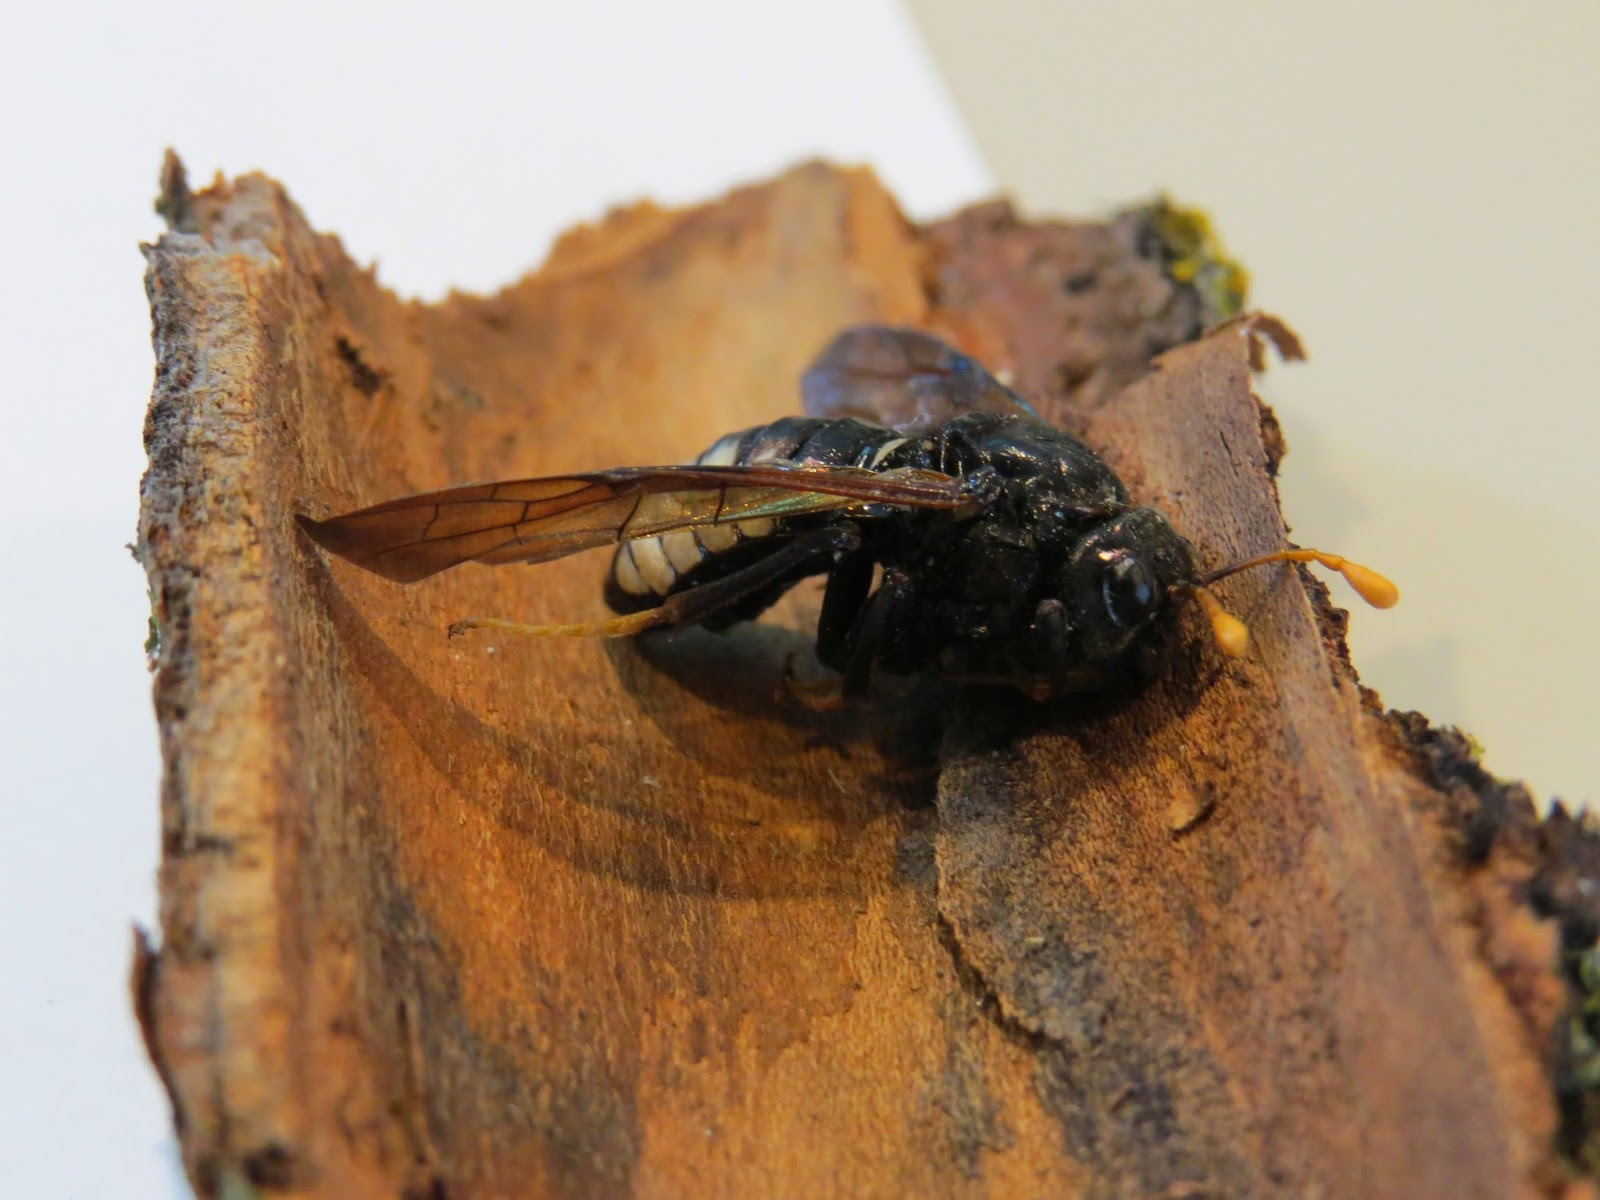 A close up of a North American native bee